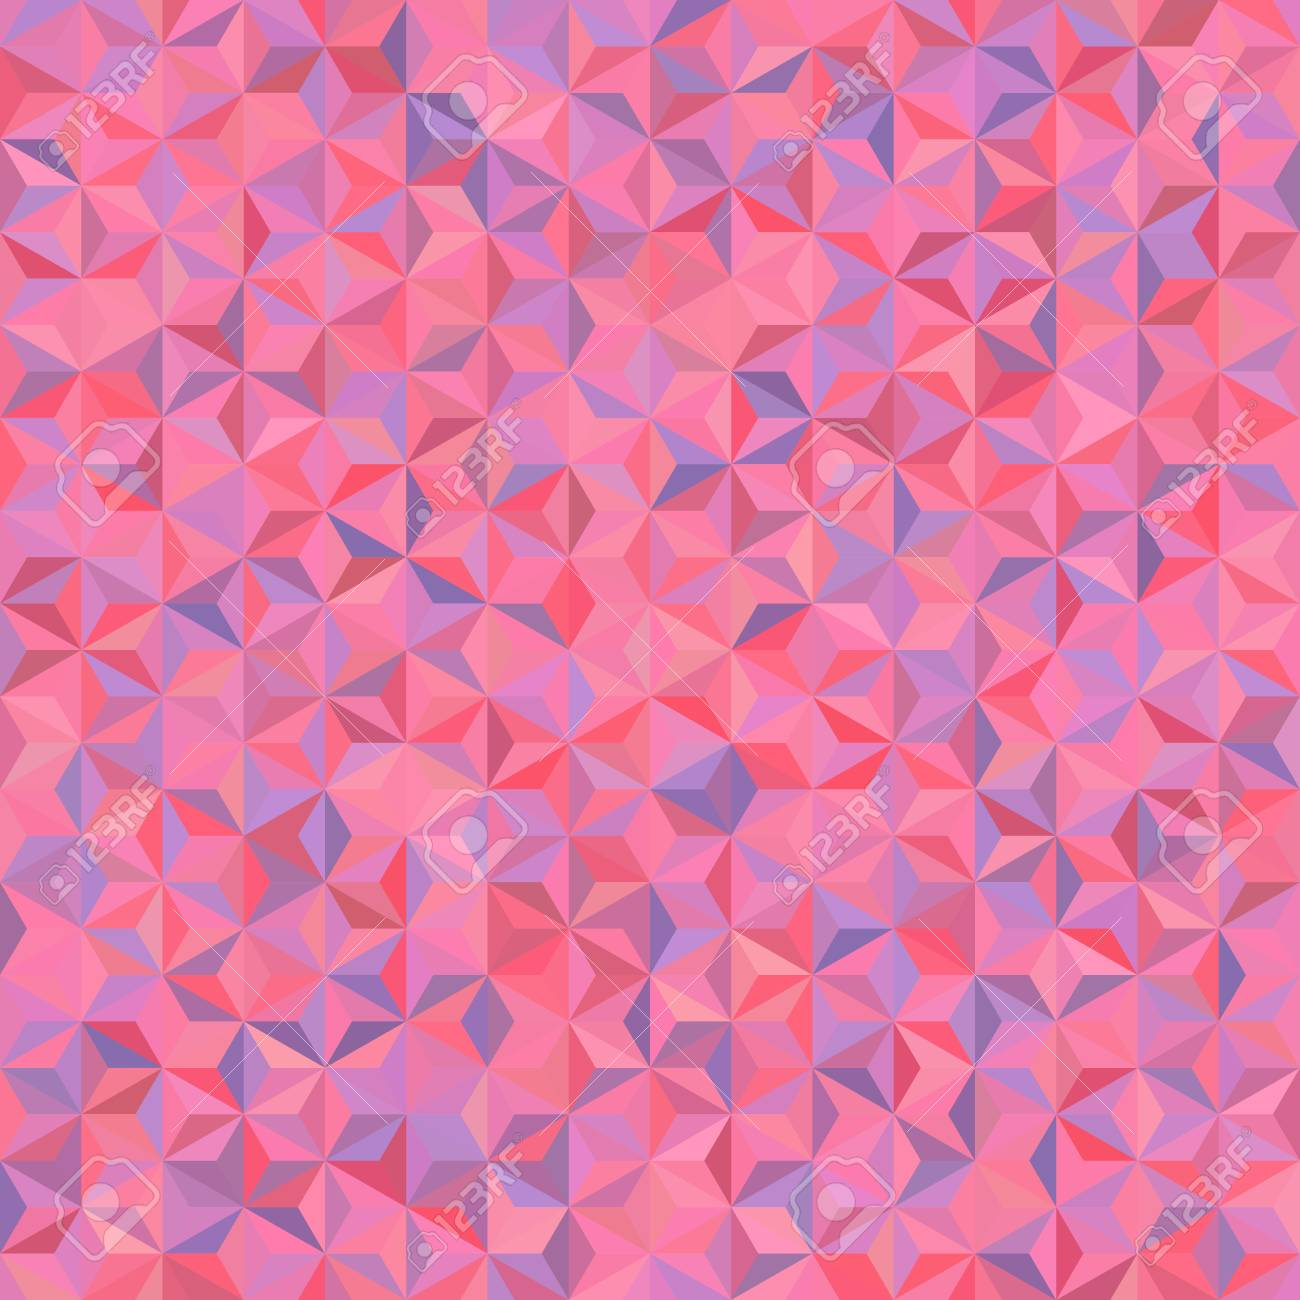 abstract seamless background consisting of pink triangles geometric